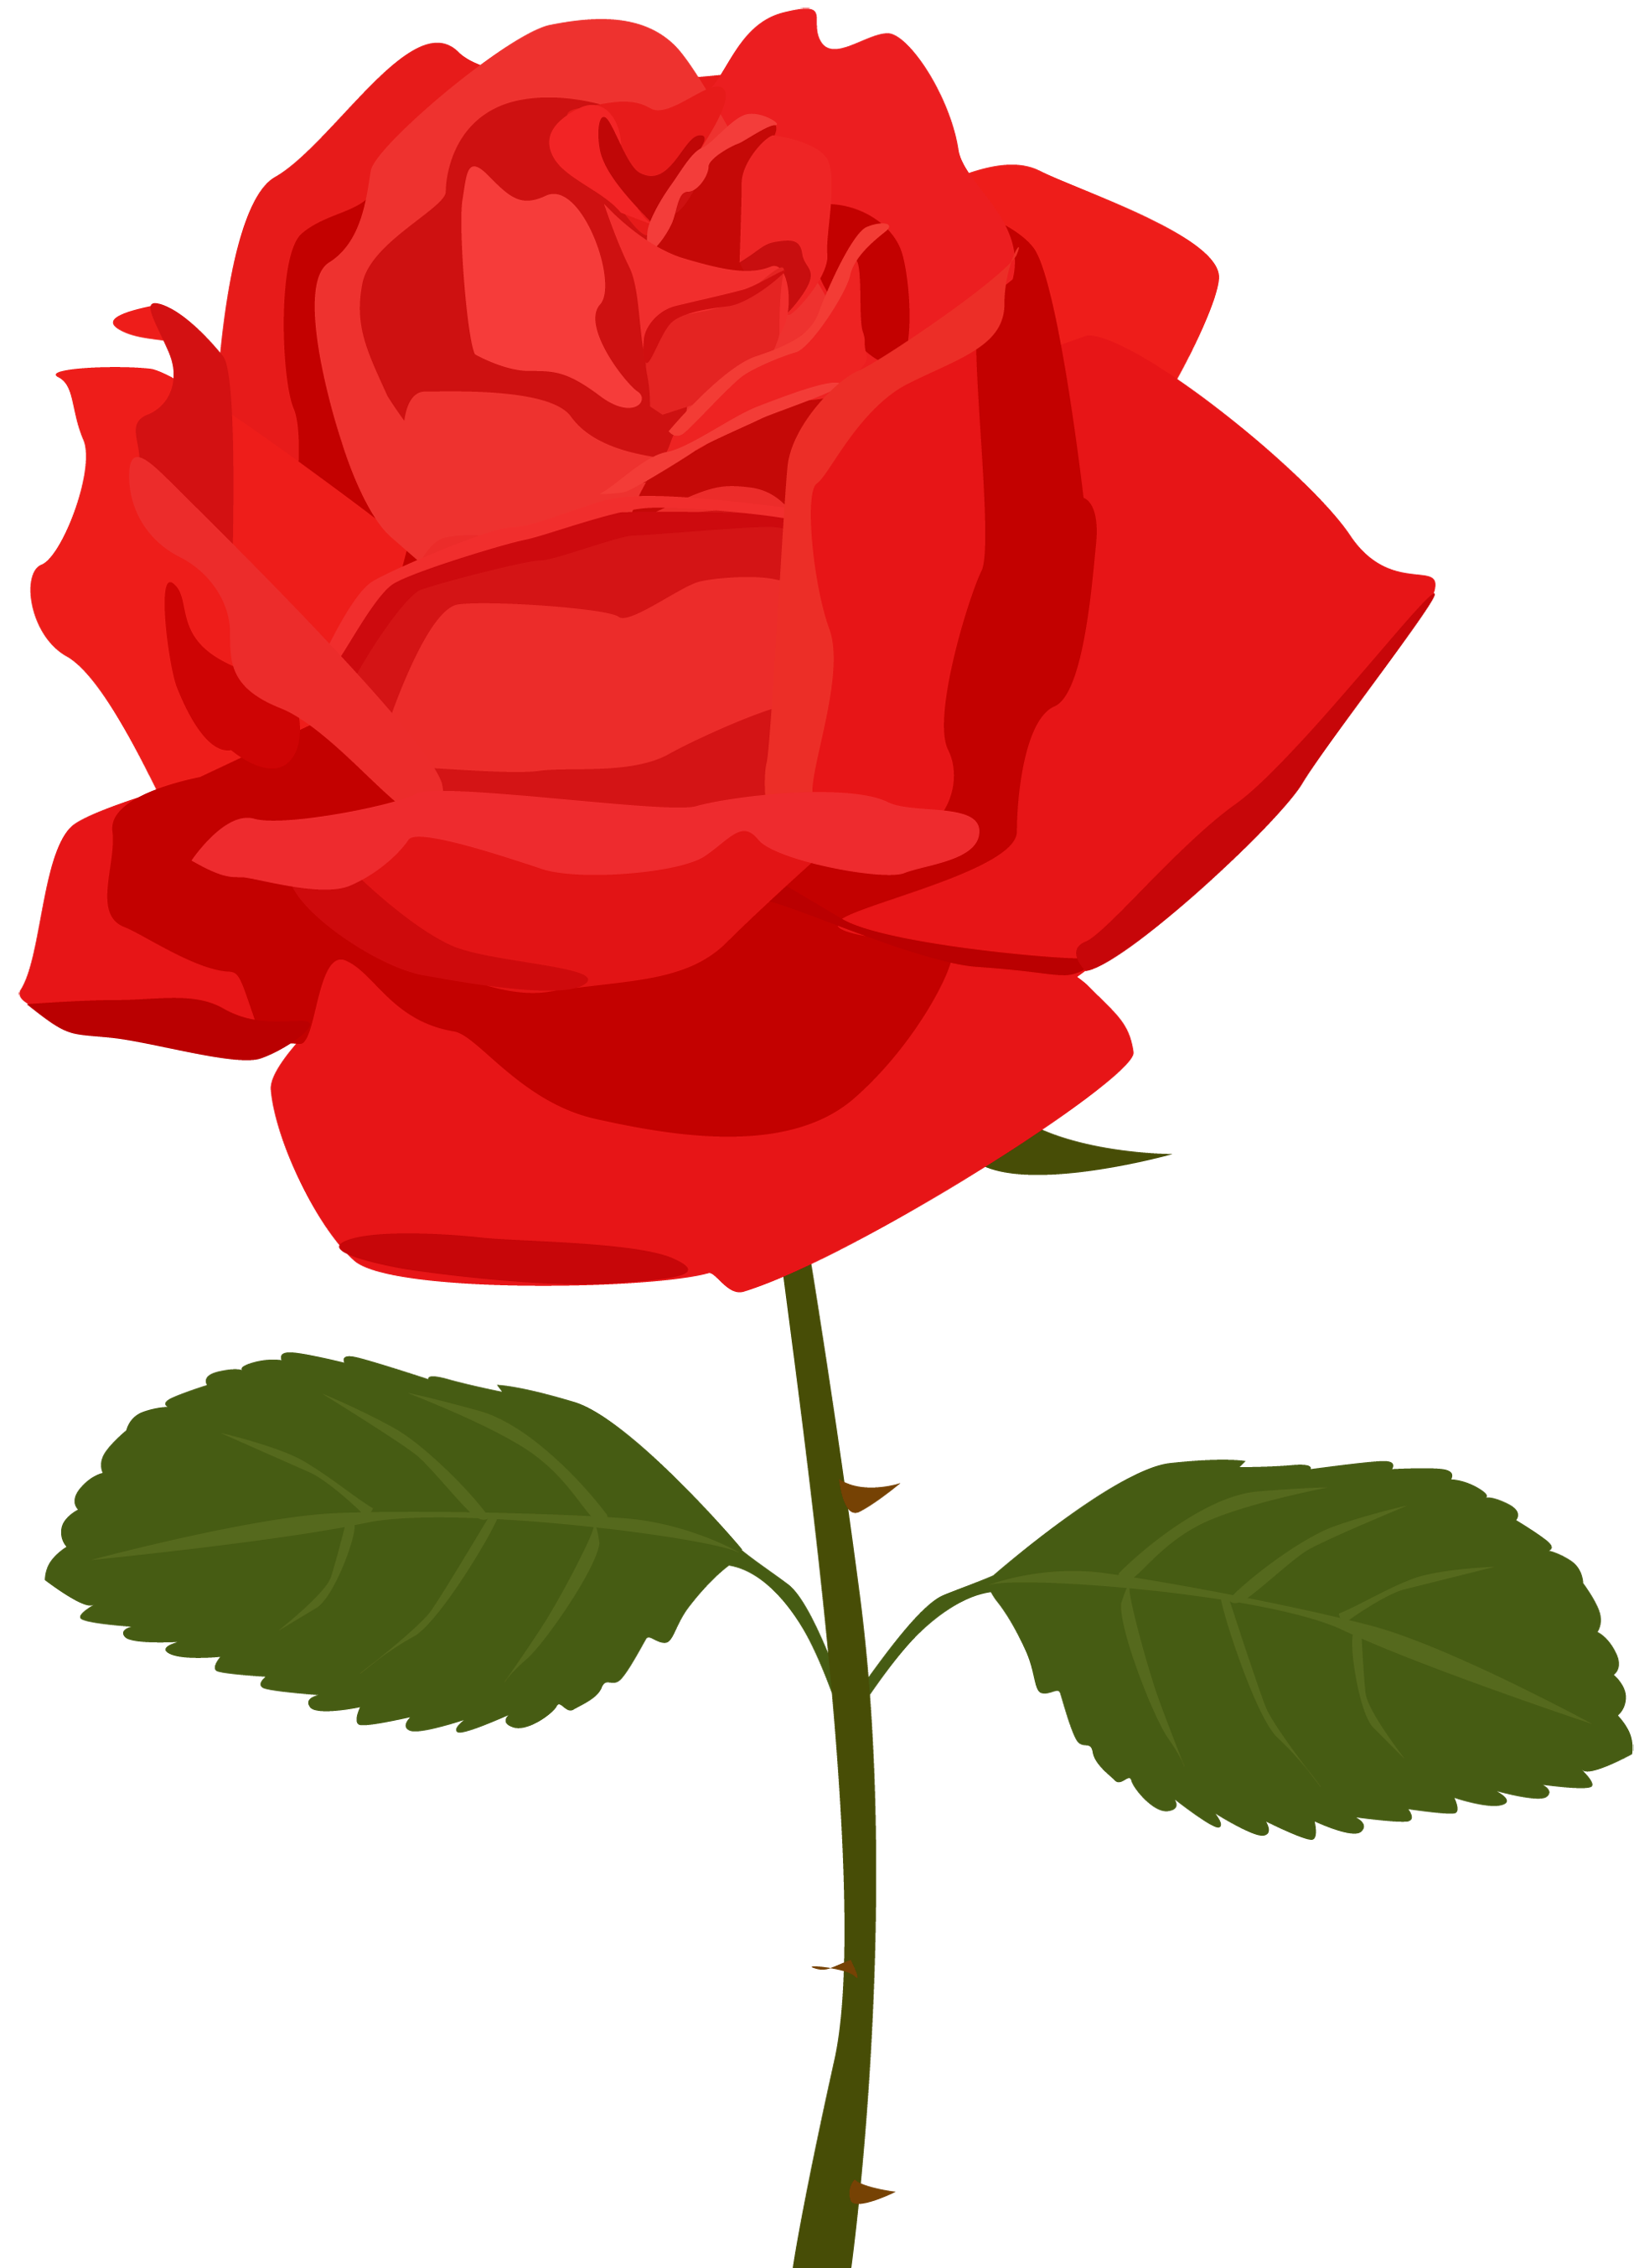 svg free library Transparent red rose picture. Roses clipart png.